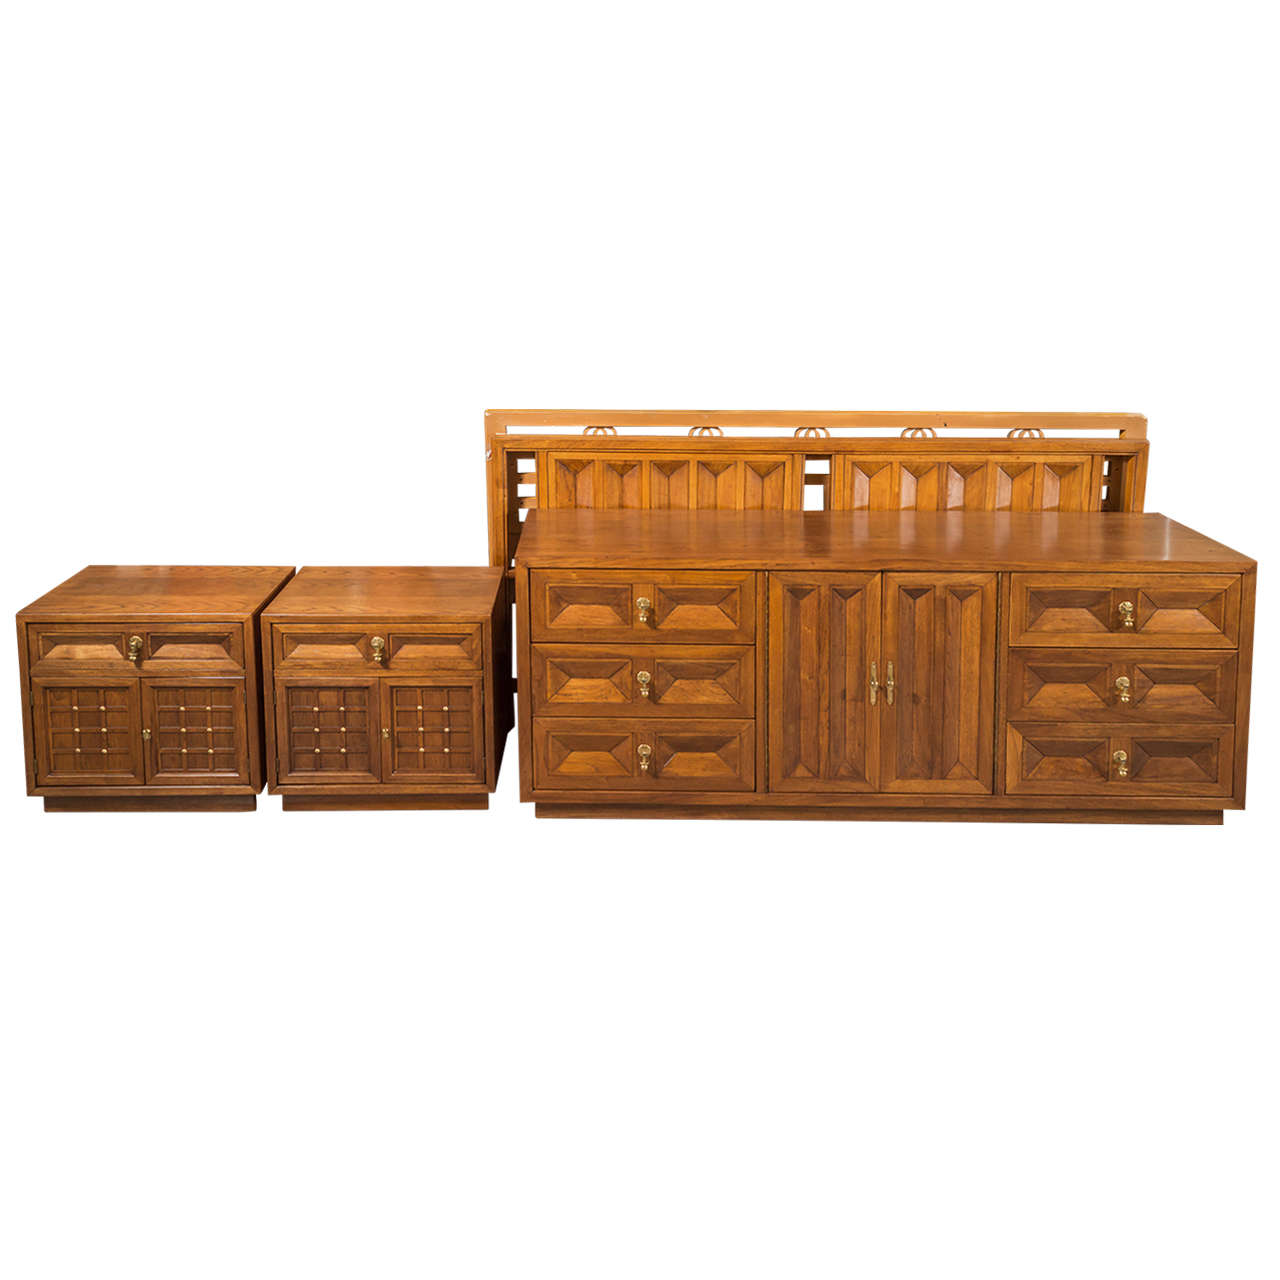 6957b65e4eab1 American of Martinsville Spanish Revival Walnut King Headboard For Sale